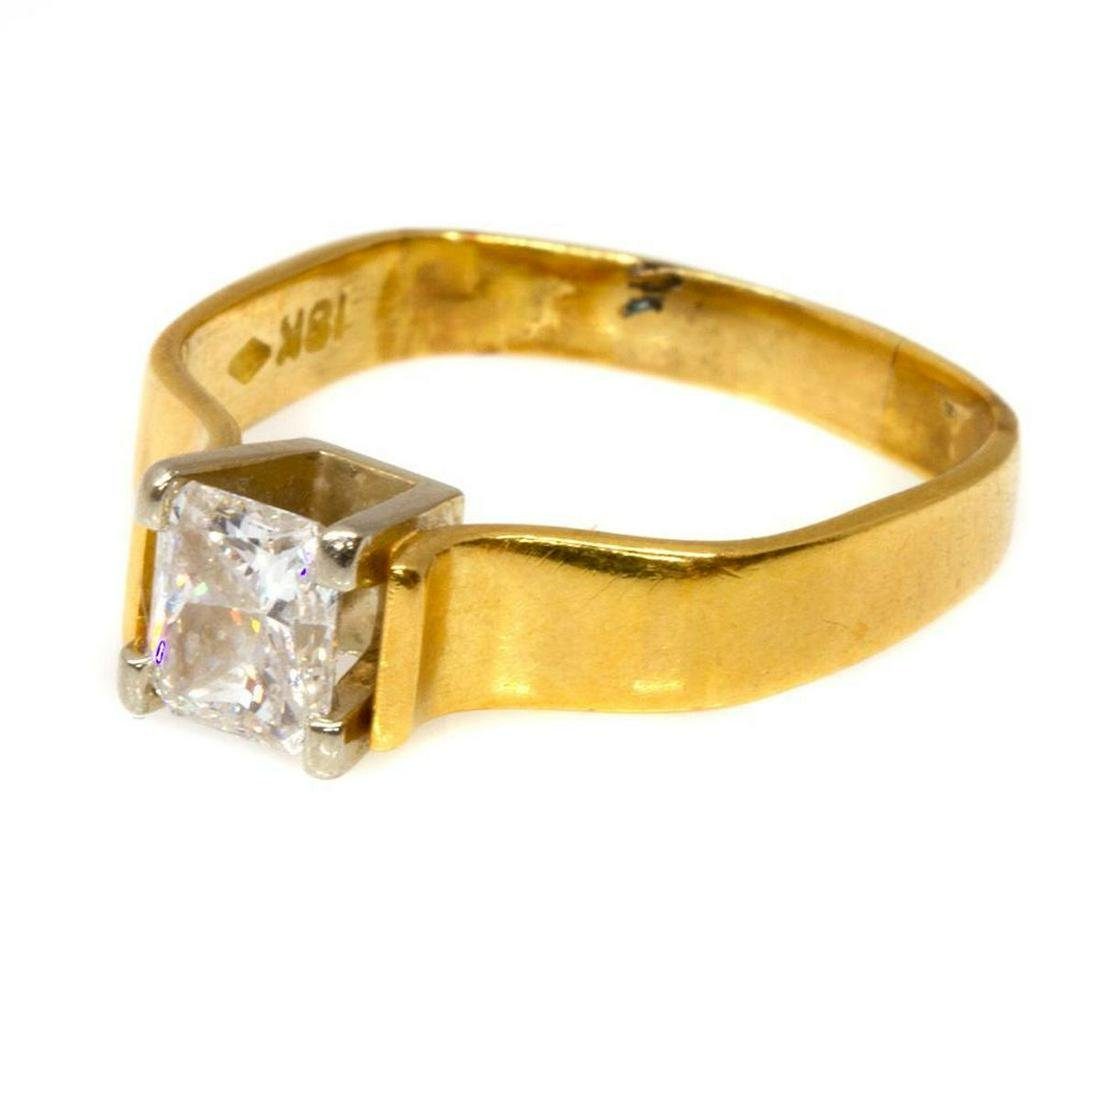 Diamond & 18k gold solitaire ring